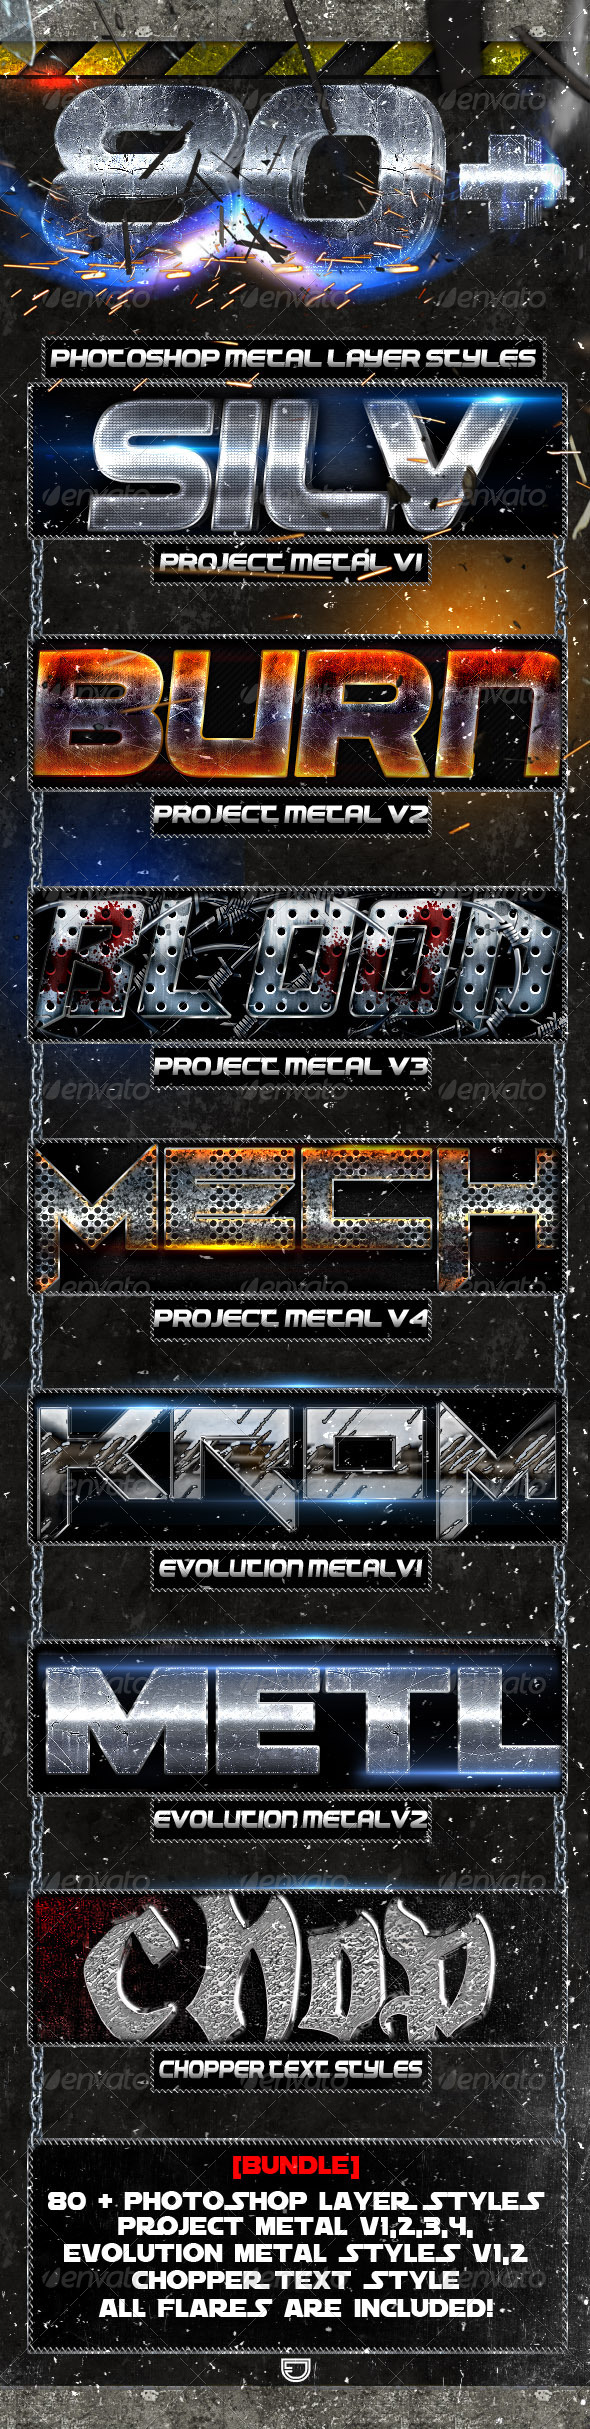 GraphicRiver [Bundle] Project Metal Photoshop Text Styles 6102745